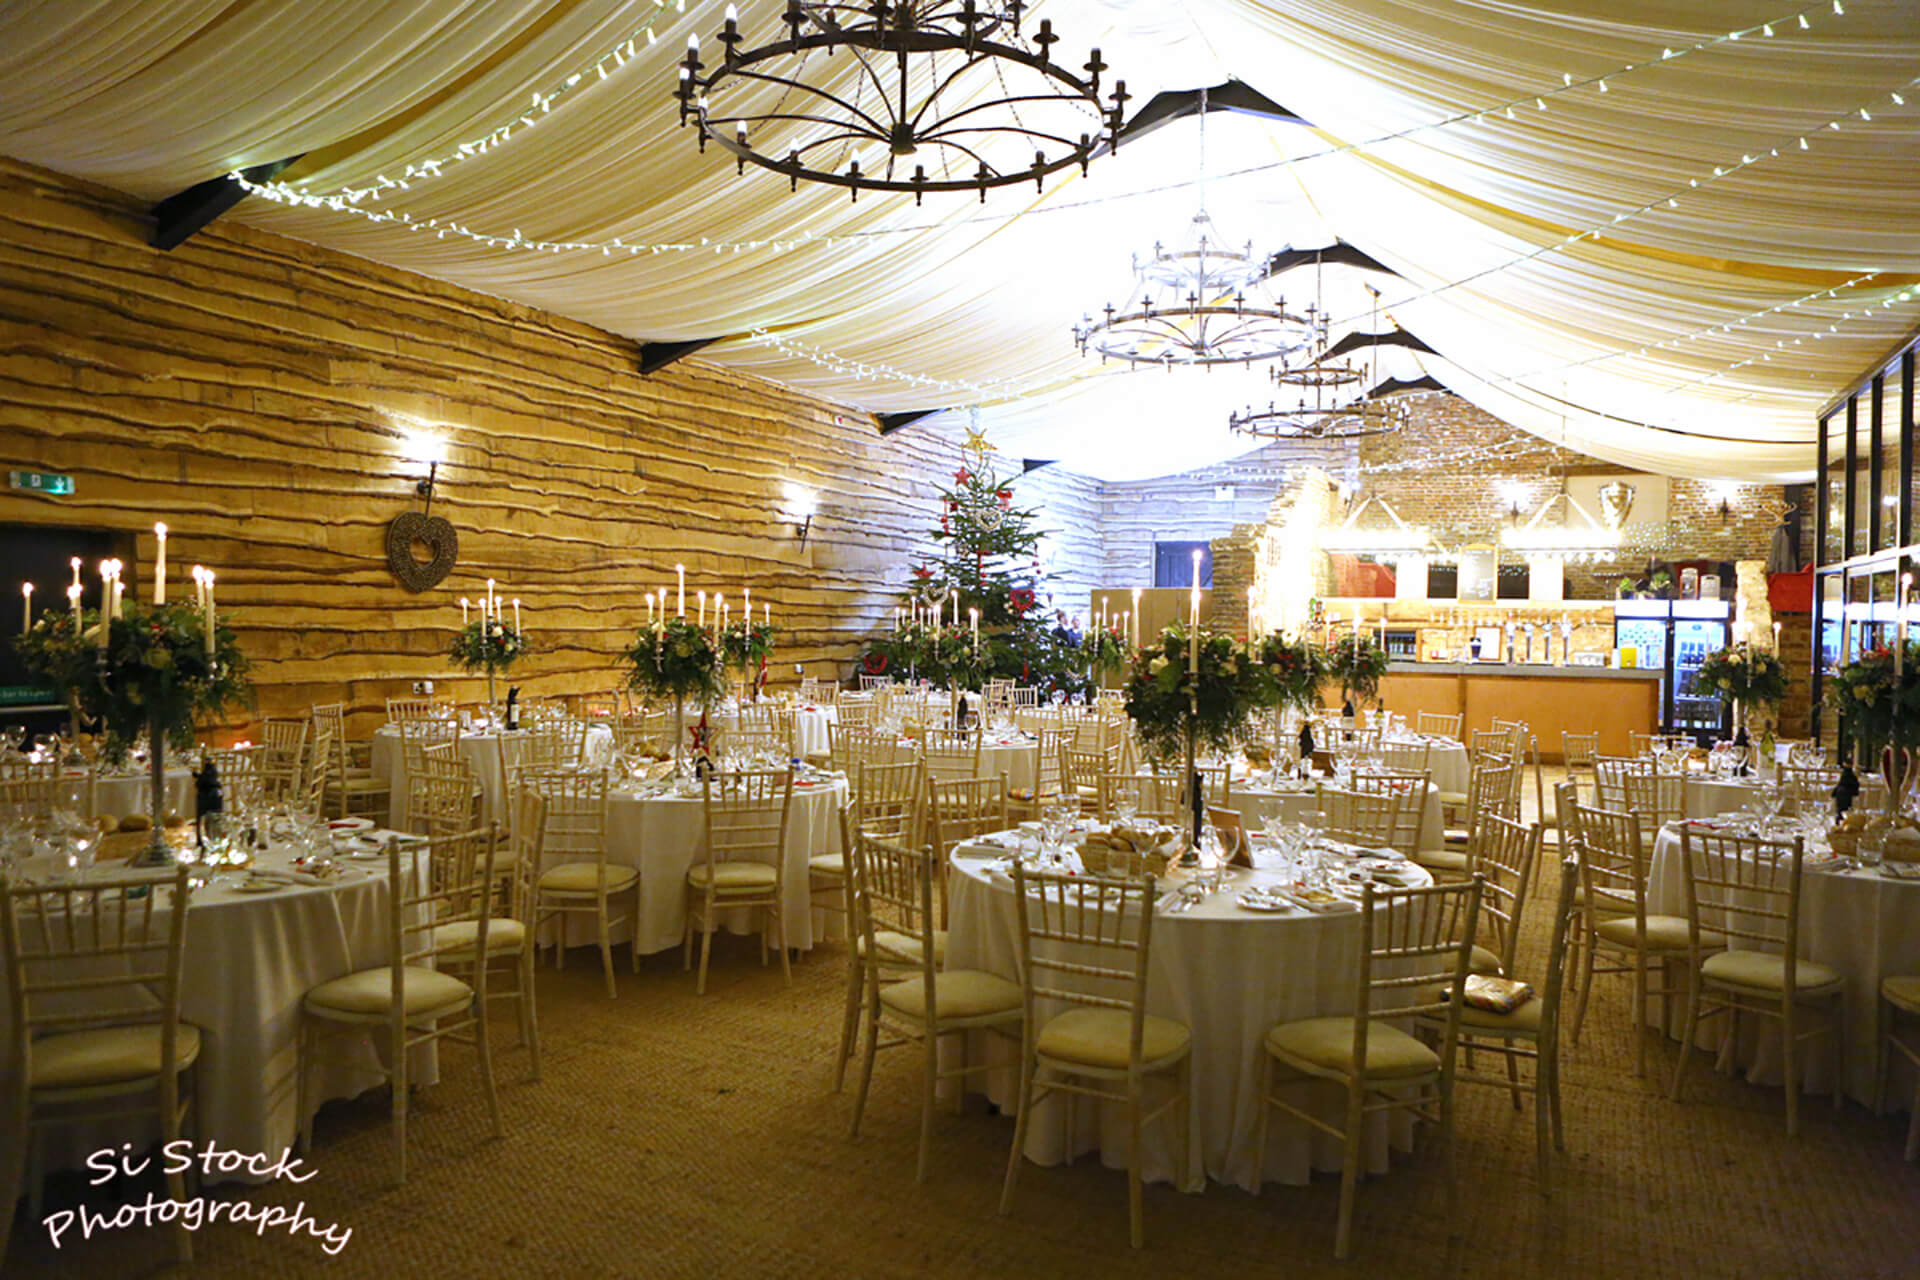 The Barn at Christmas- the wedding of Holly and James